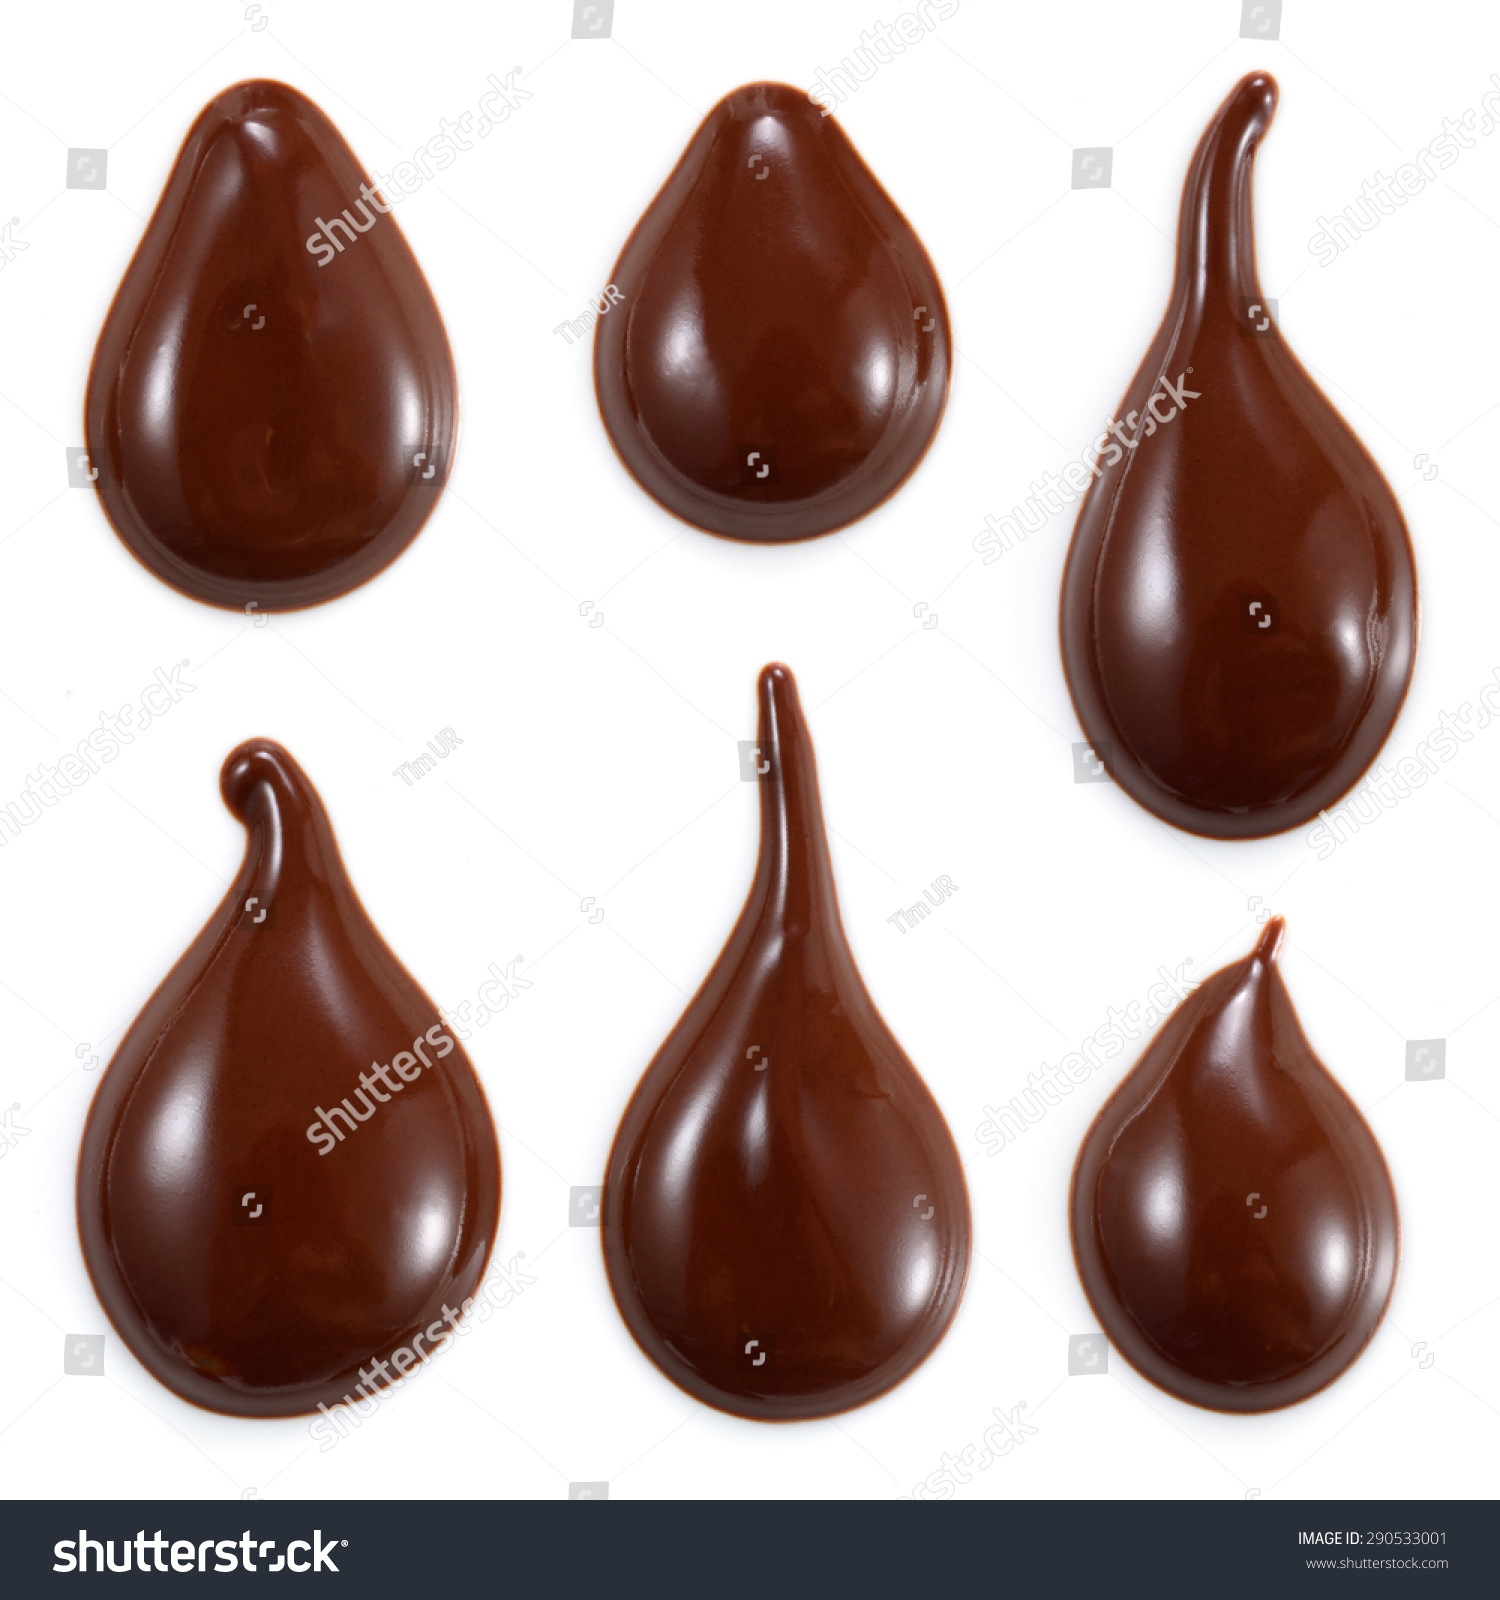 Chocolate Drops Isolated On White Background Stock Photo 290533001 ...